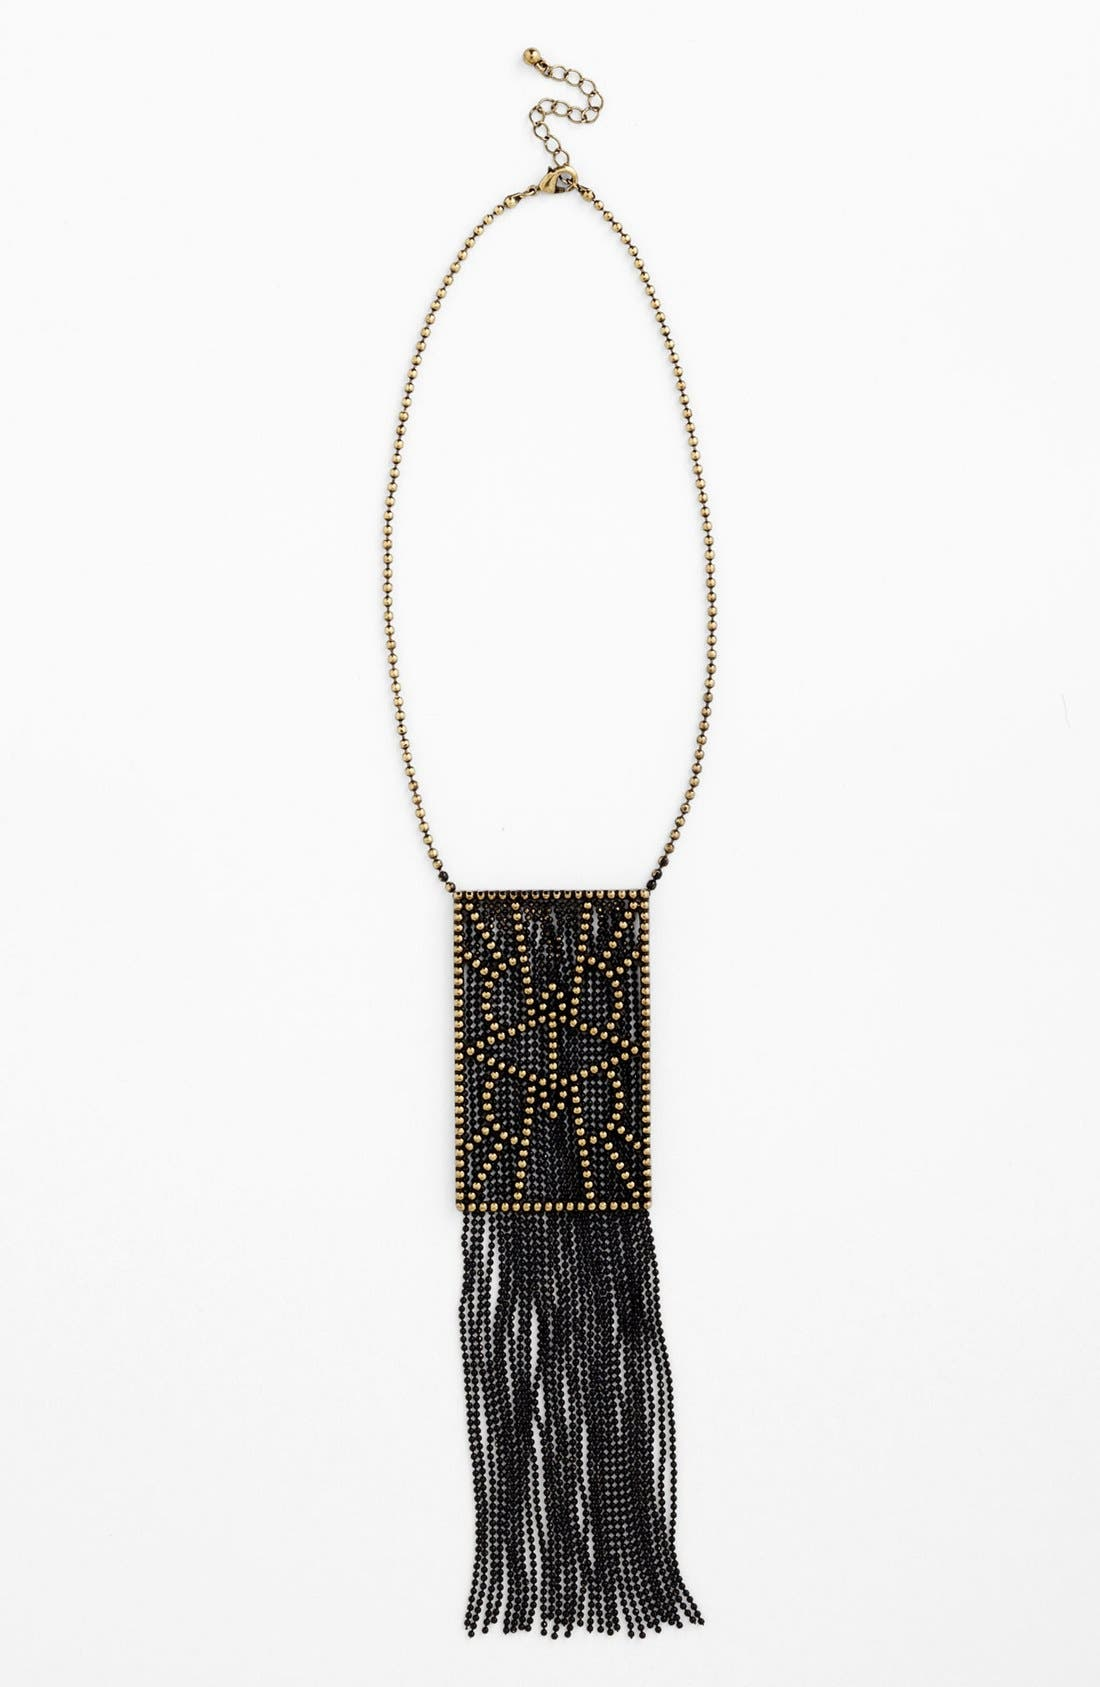 Main Image - Carbon Copy 'Feisty Fringe'  Statement Necklace